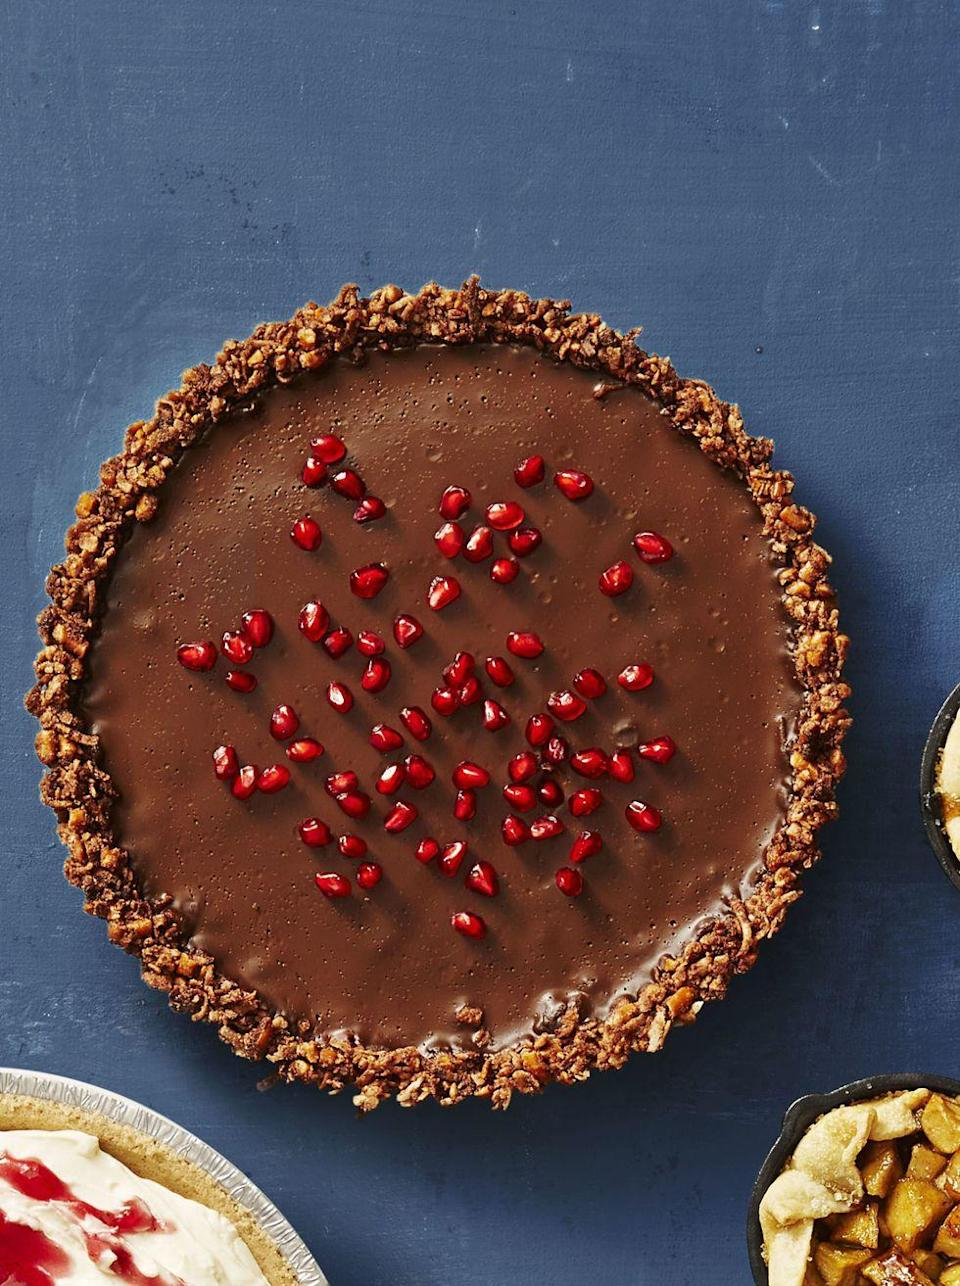 """<p>Talk about a slam-dunk dessert: This pie is vegan, gluten-free and comes together in about a half hour.</p><p><em><a href=""""https://www.goodhousekeeping.com/food-recipes/a41082/gluten-free-chocolate-ganache-tart-recipe/"""" rel=""""nofollow noopener"""" target=""""_blank"""" data-ylk=""""slk:Get the recipe for Gluten-Free Chocolate Ganache Tart »"""" class=""""link rapid-noclick-resp"""">Get the recipe for Gluten-Free Chocolate Ganache Tart »</a></em></p><p><strong>RELATED: </strong><a href=""""https://www.goodhousekeeping.com/food-recipes/dessert/g376/gluten-free-dessert-recipes/"""" rel=""""nofollow noopener"""" target=""""_blank"""" data-ylk=""""slk:25 Gluten-Free Desserts That Will Be the Hit of Any Party"""" class=""""link rapid-noclick-resp"""">25 Gluten-Free Desserts That Will Be the Hit of Any Party</a></p>"""